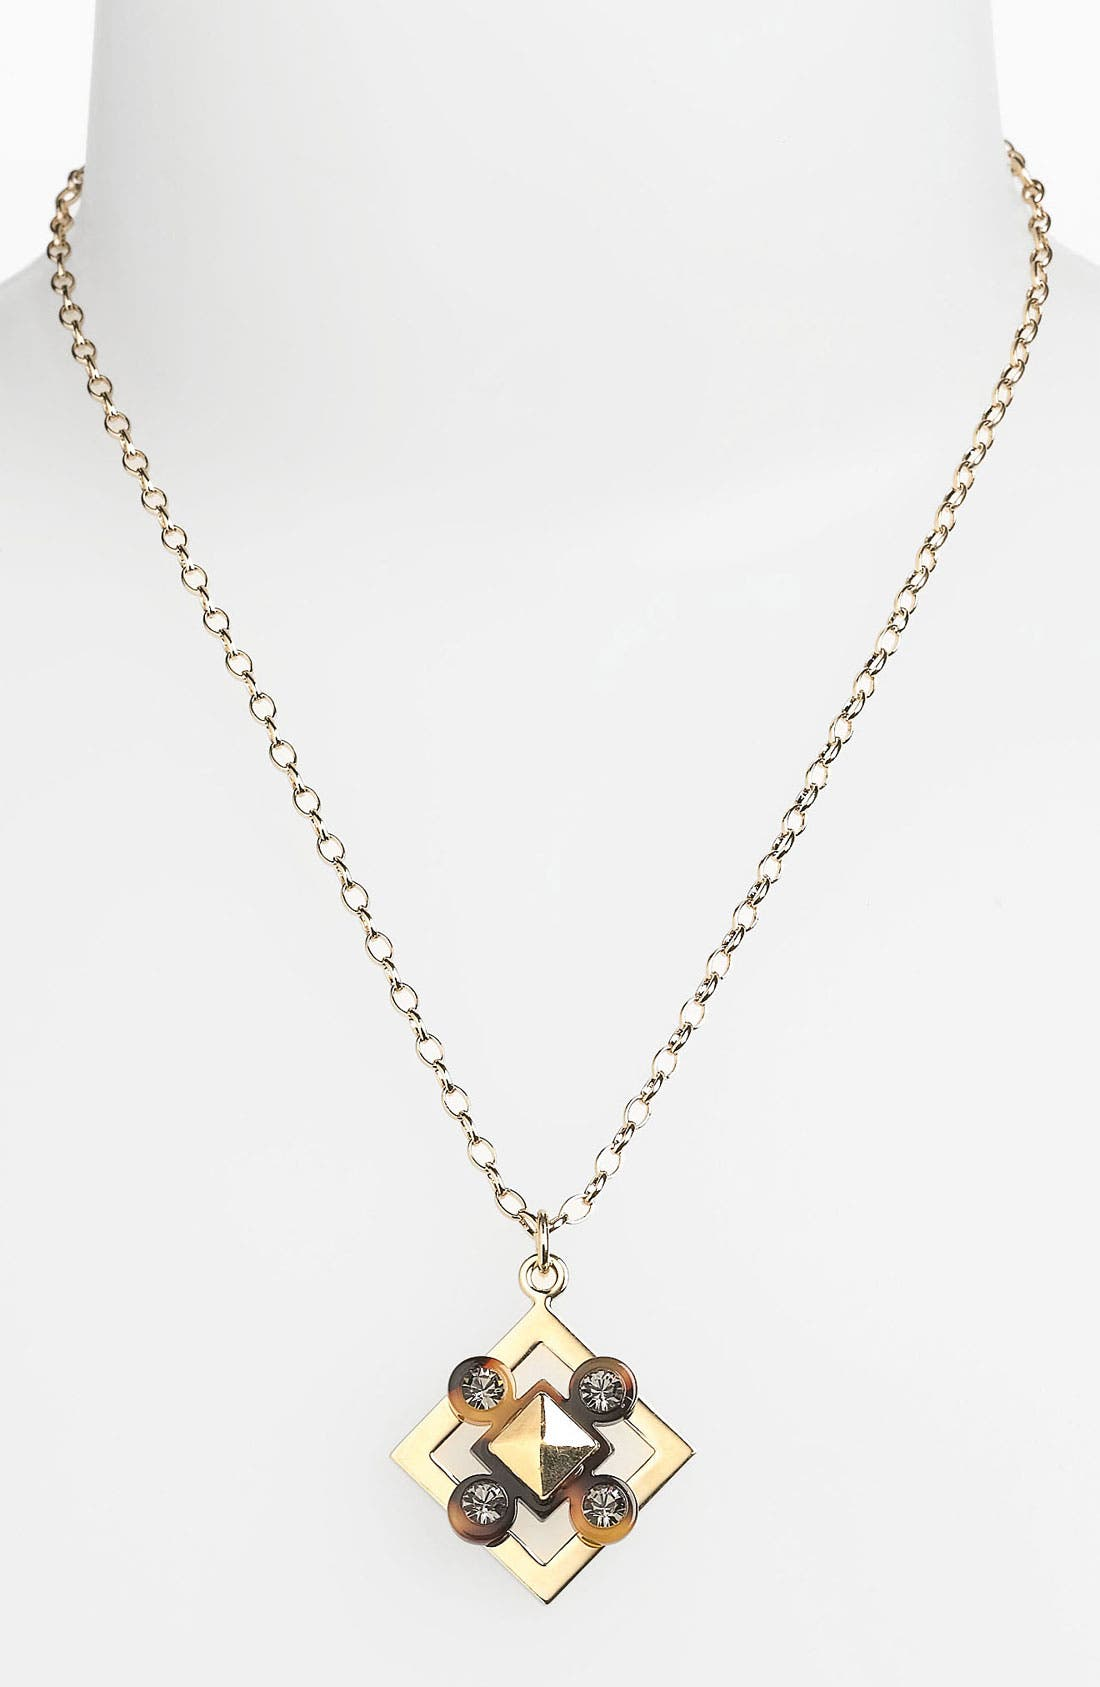 Main Image - Tory Burch Pendant Necklace